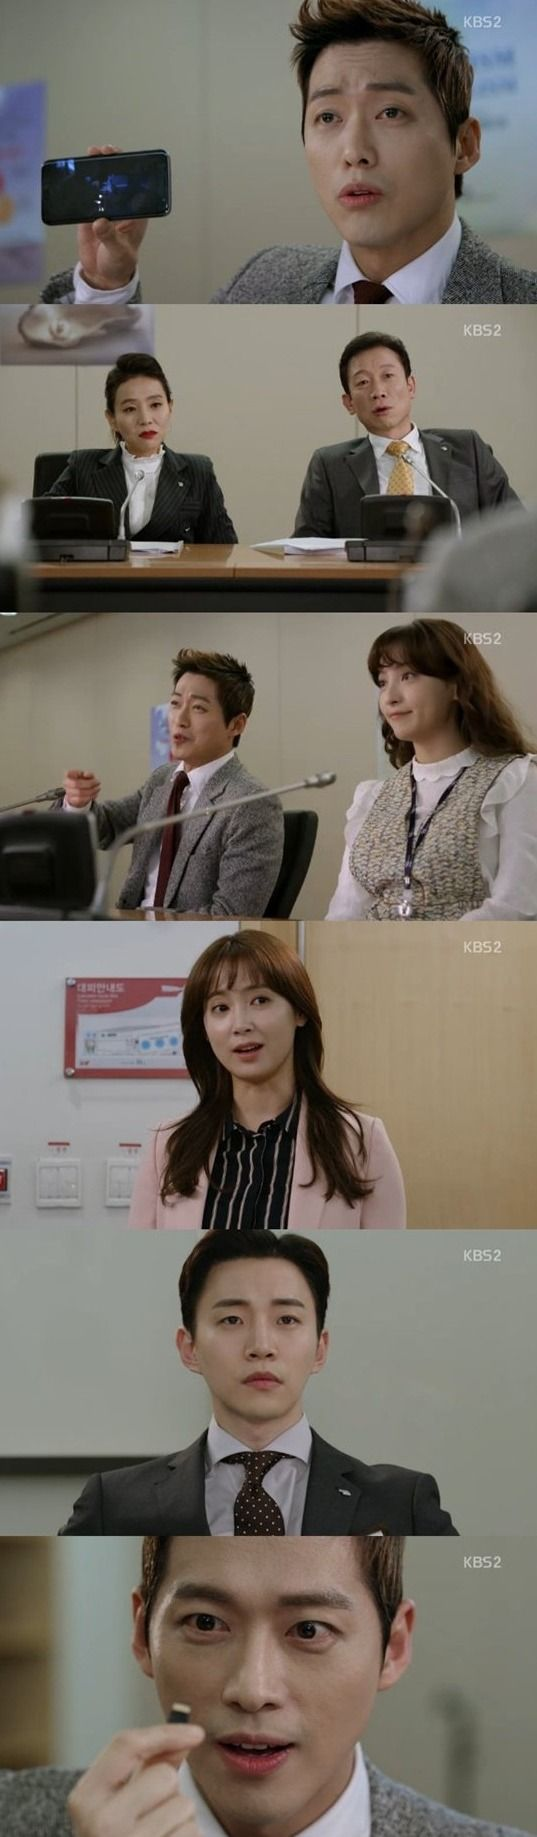 [Spoiler] Added episode 16 captures for the #kdrama 'Chief Kim'